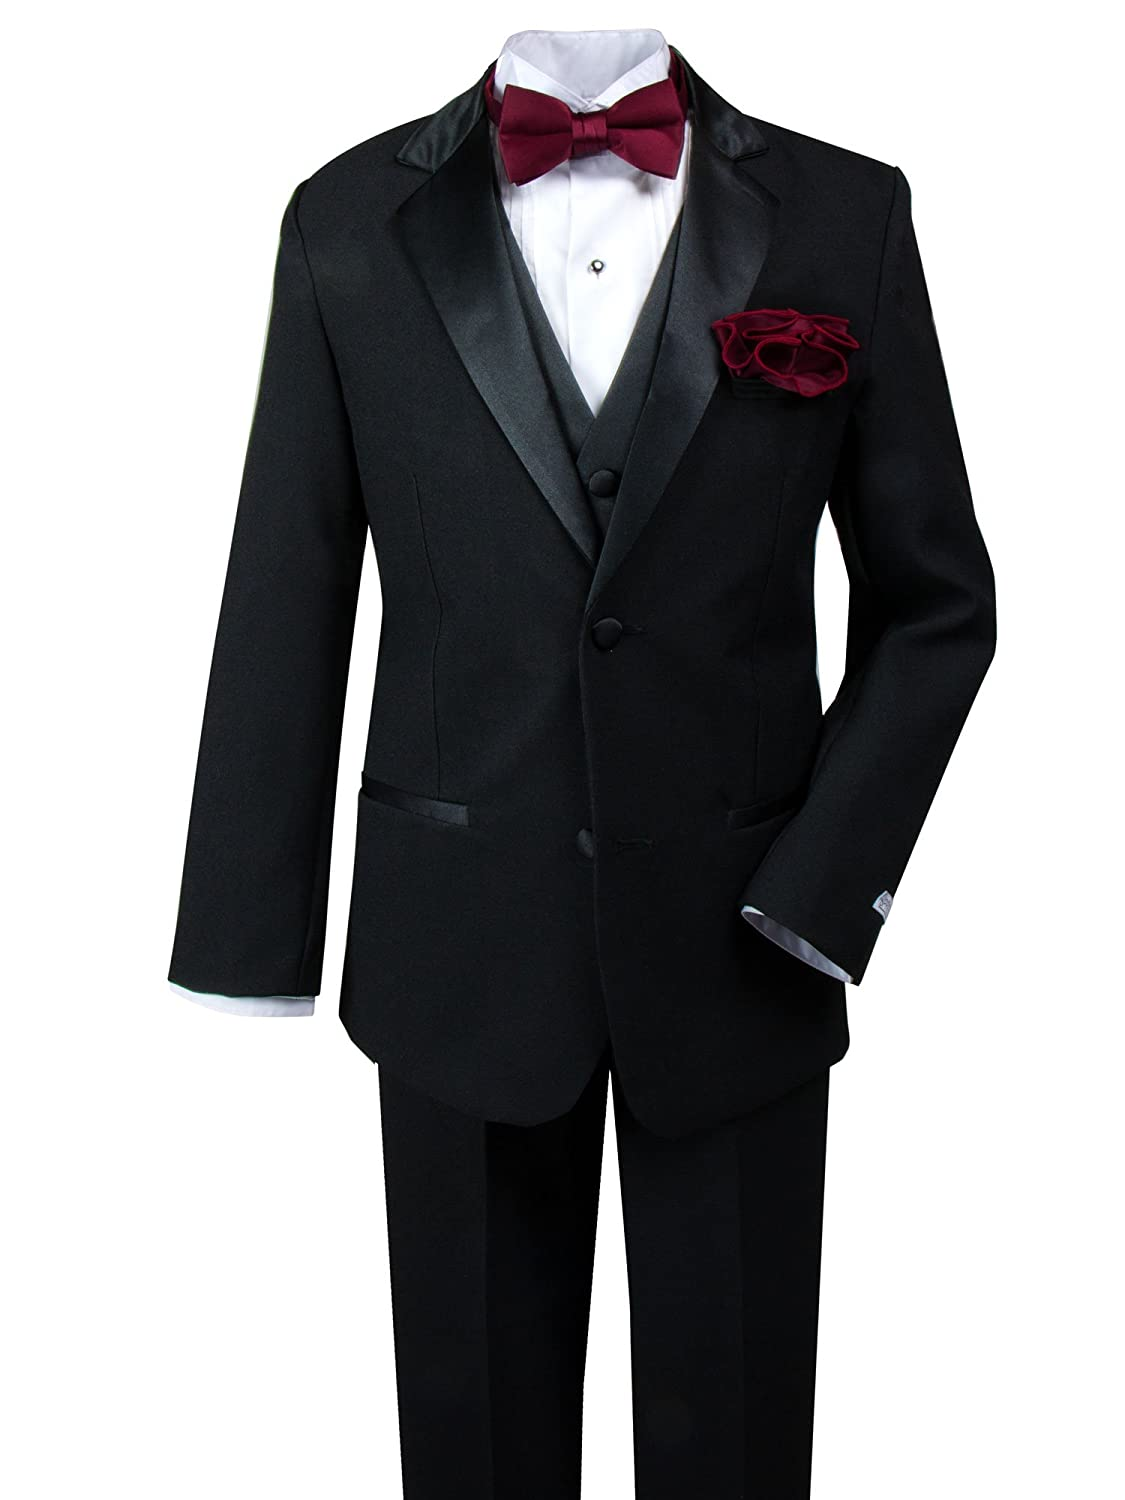 Spring Notion Baby Boys' Tuxedo Set with Bow Tie and Handkerchief ERF012-SNB-012-BH